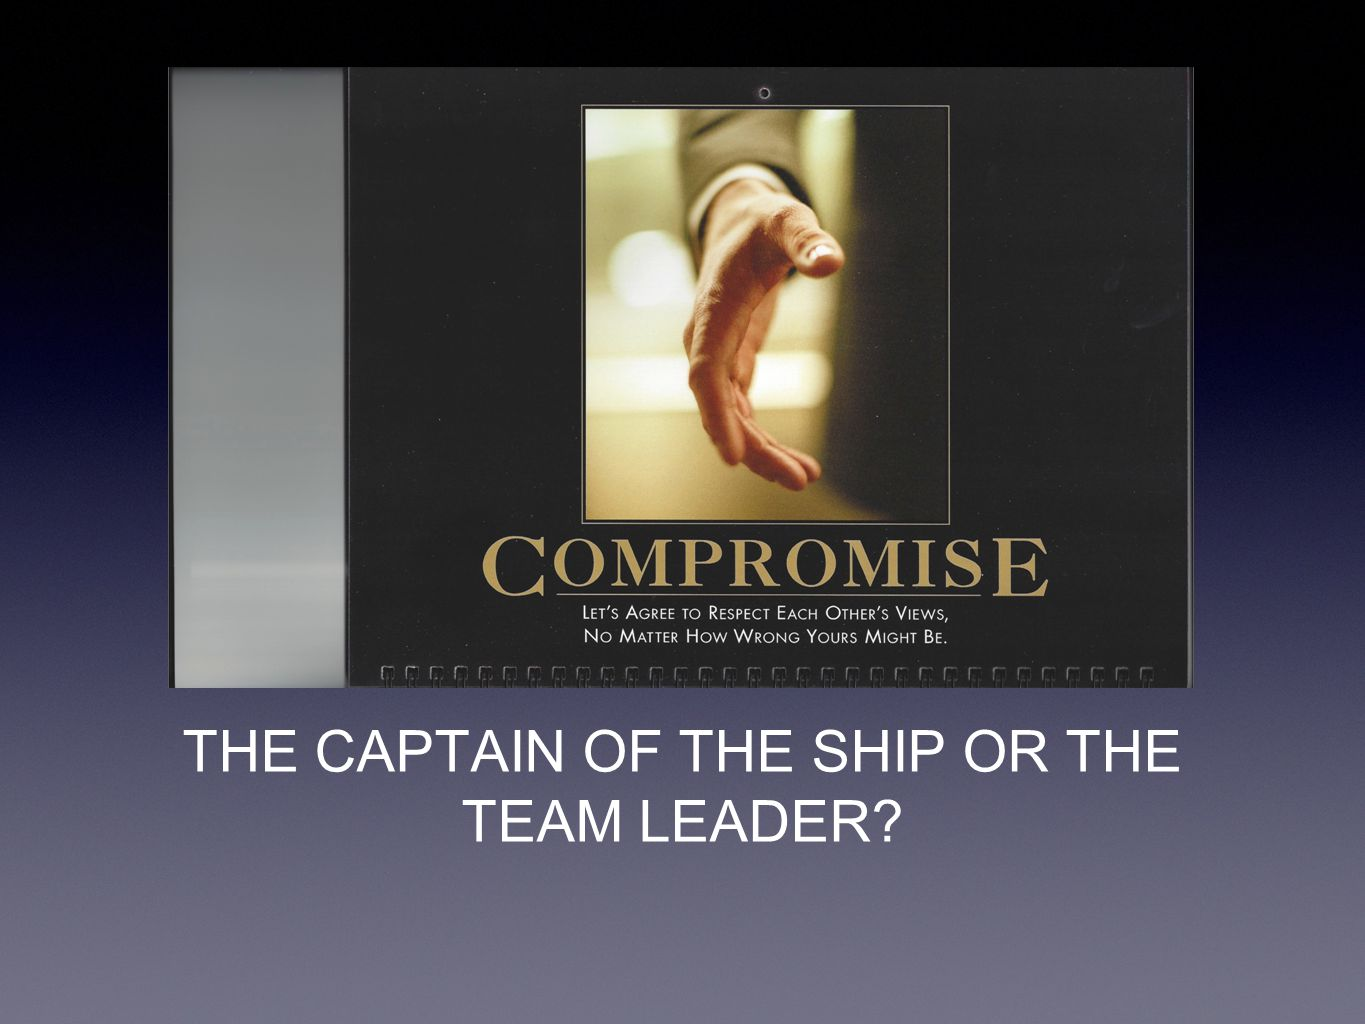 THE CAPTAIN OF THE SHIP OR THE TEAM LEADER?